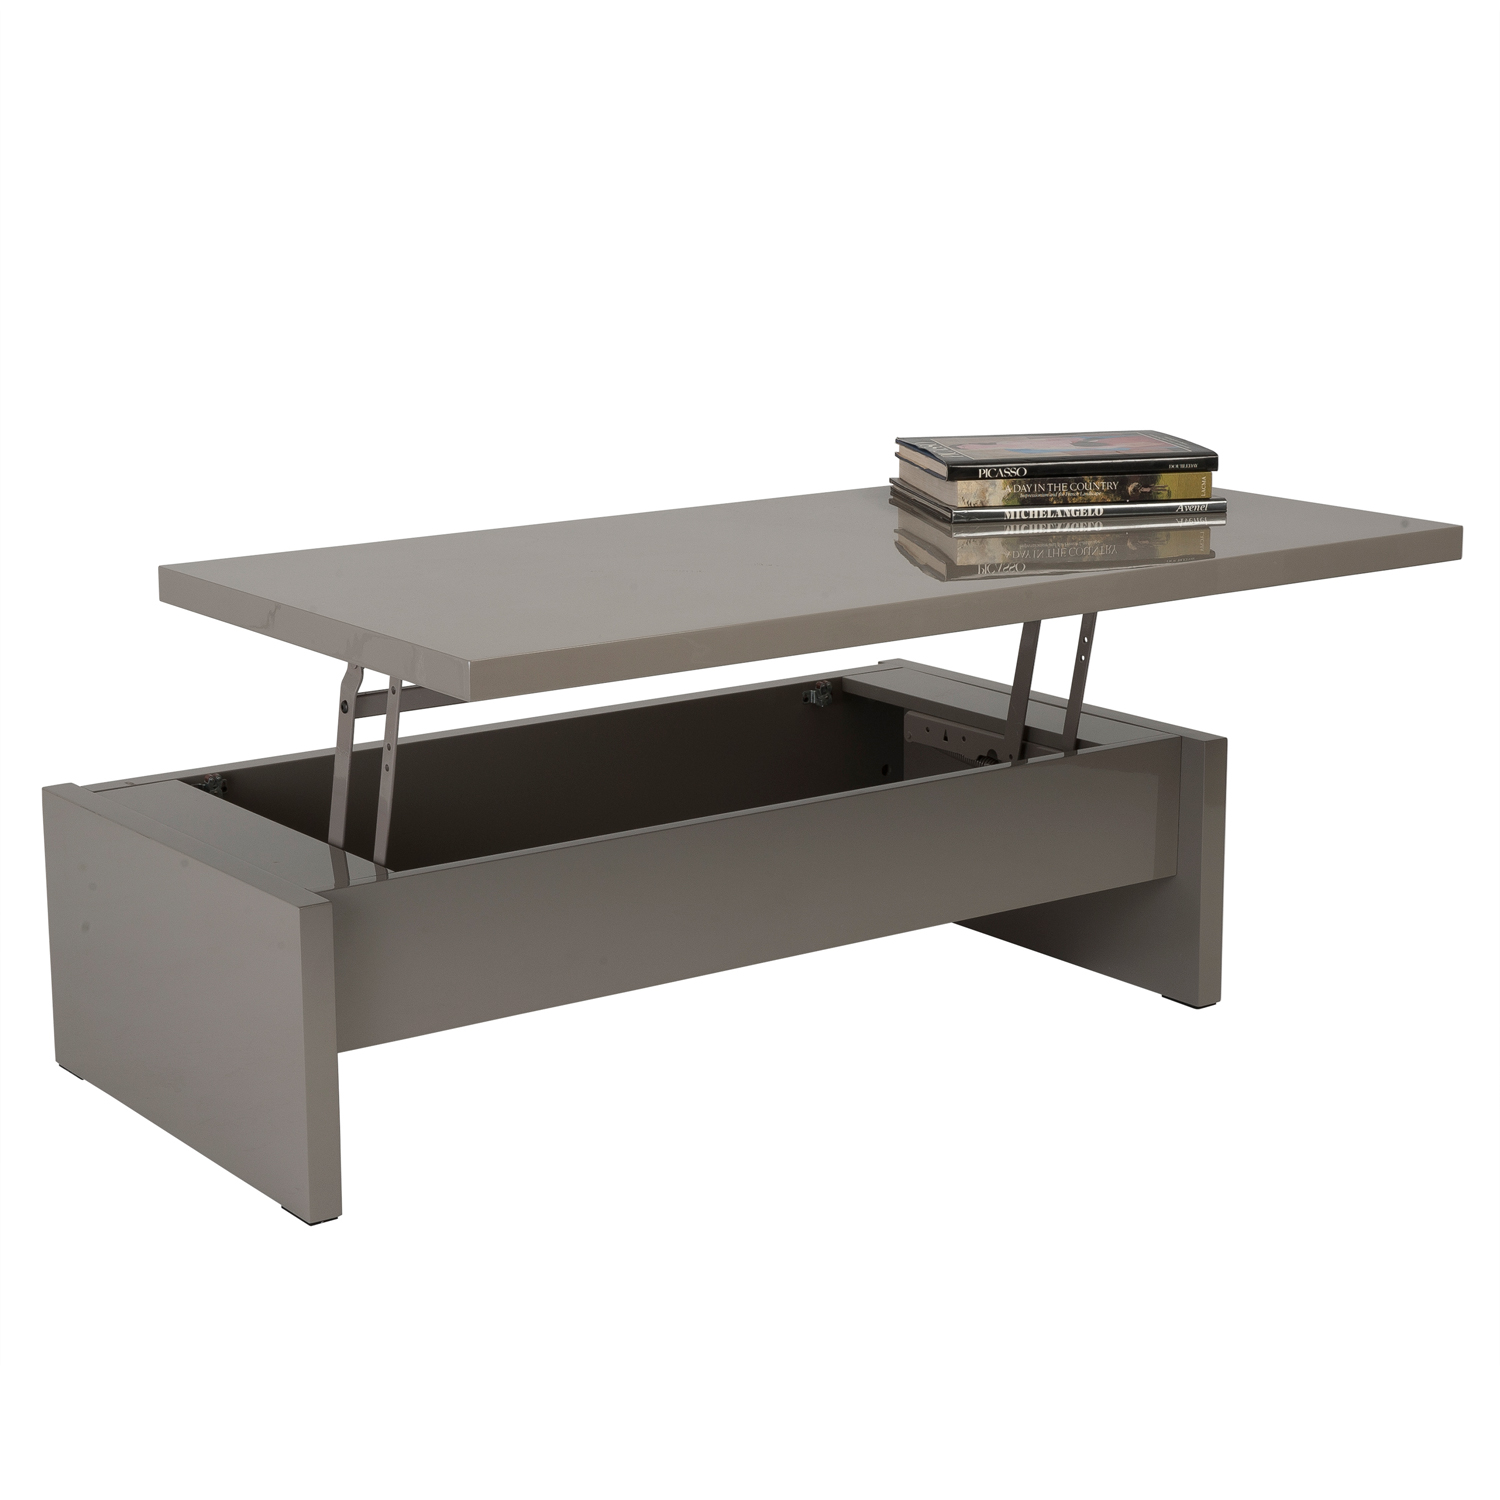 MultiLevel Storage Coffee Table White Lacquer Affordably